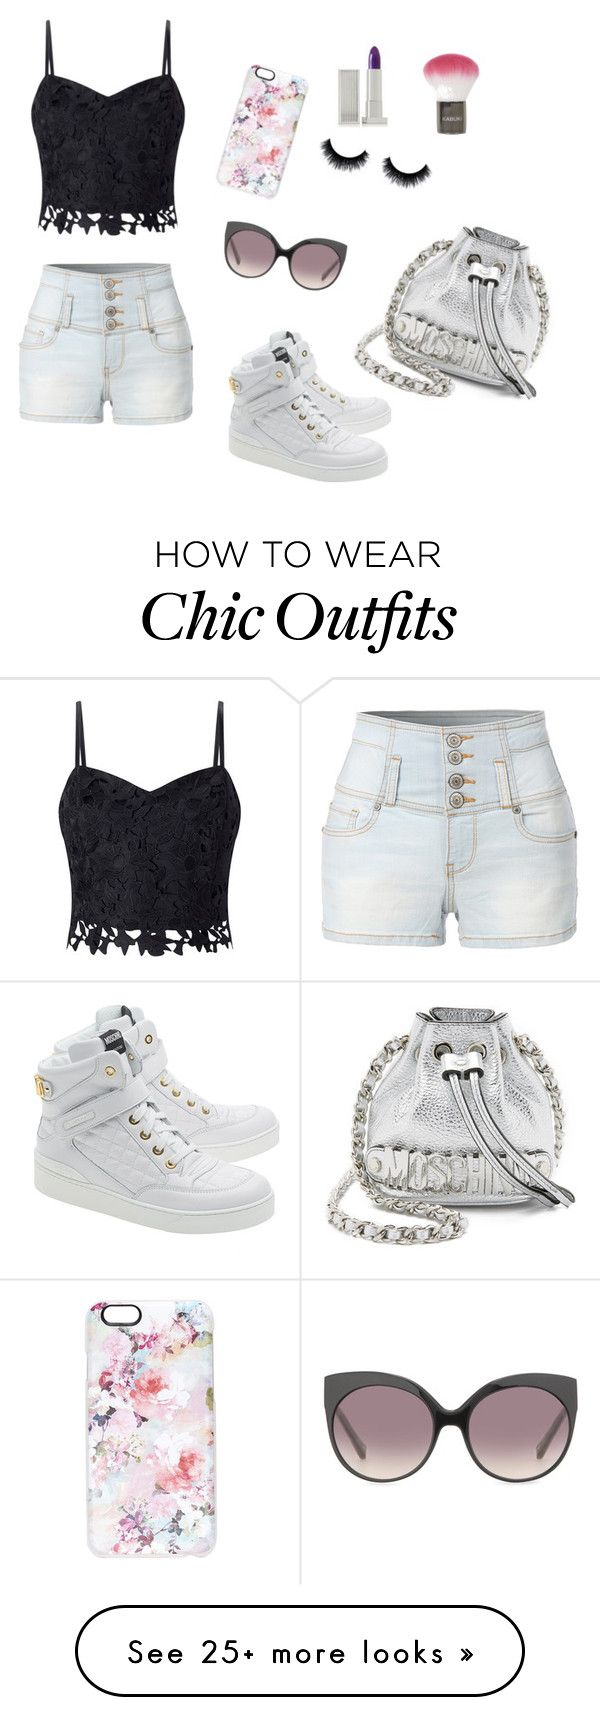 """""""Girly look ❤️"""" by tumblr-draw on Polyvore featuring Lipsy, LE3NO, Casetify, Lipstick Queen, Topshop, Moschino and Linda Farrow"""